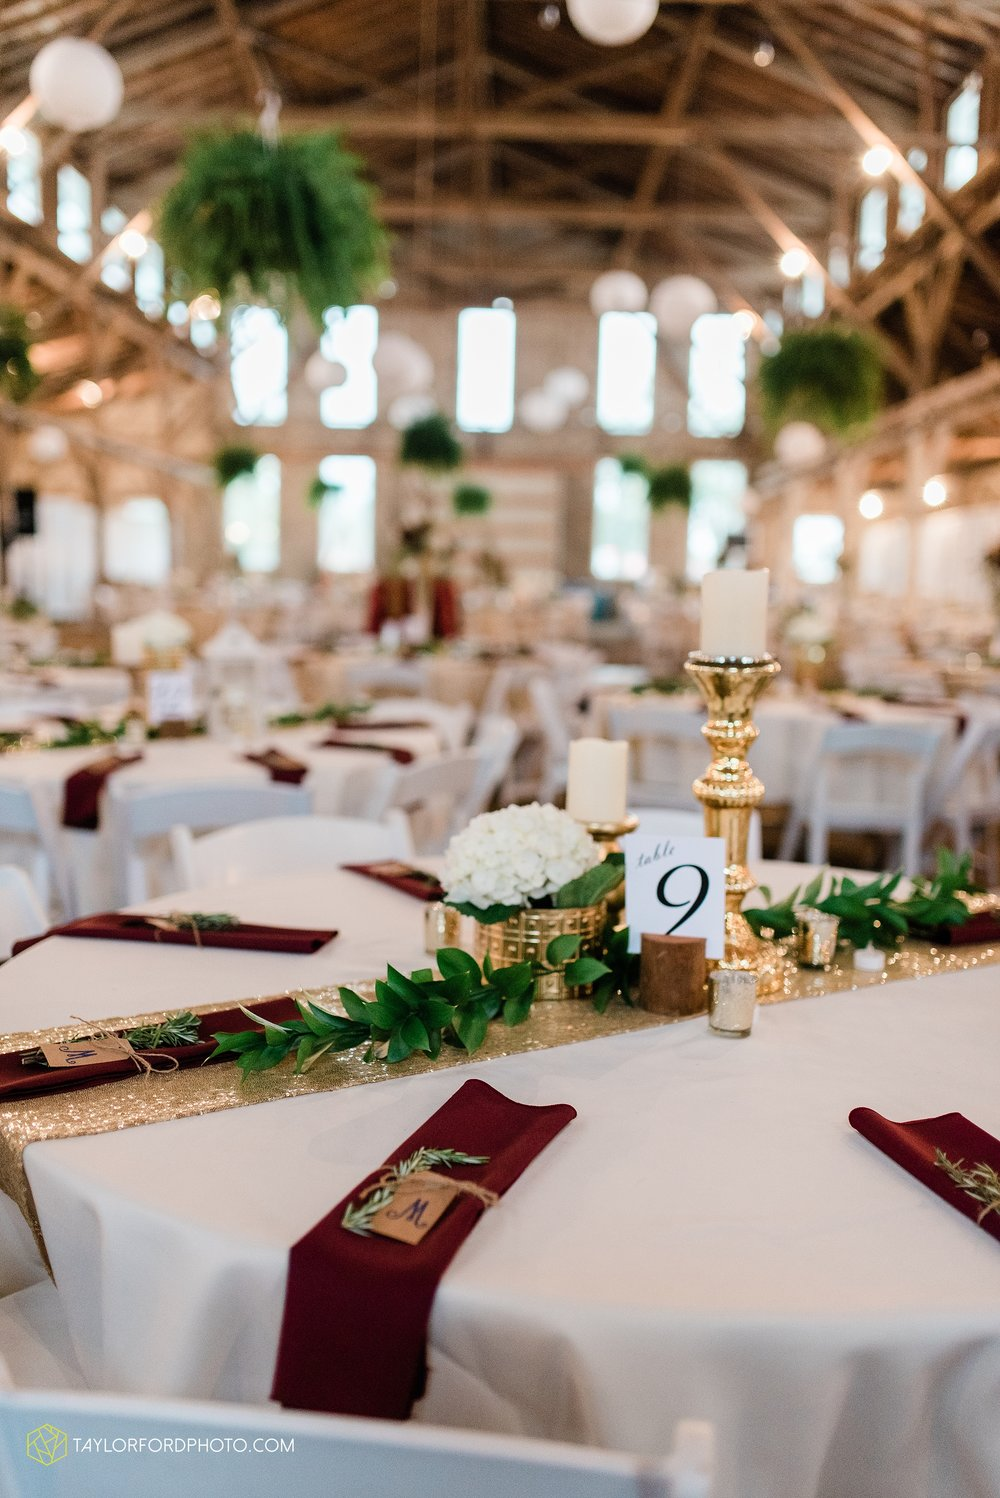 van-wert-ohio-first-united-methodist-church-county-dairy-barn-wedding-photographer-taylor-ford-photography_9869.jpg